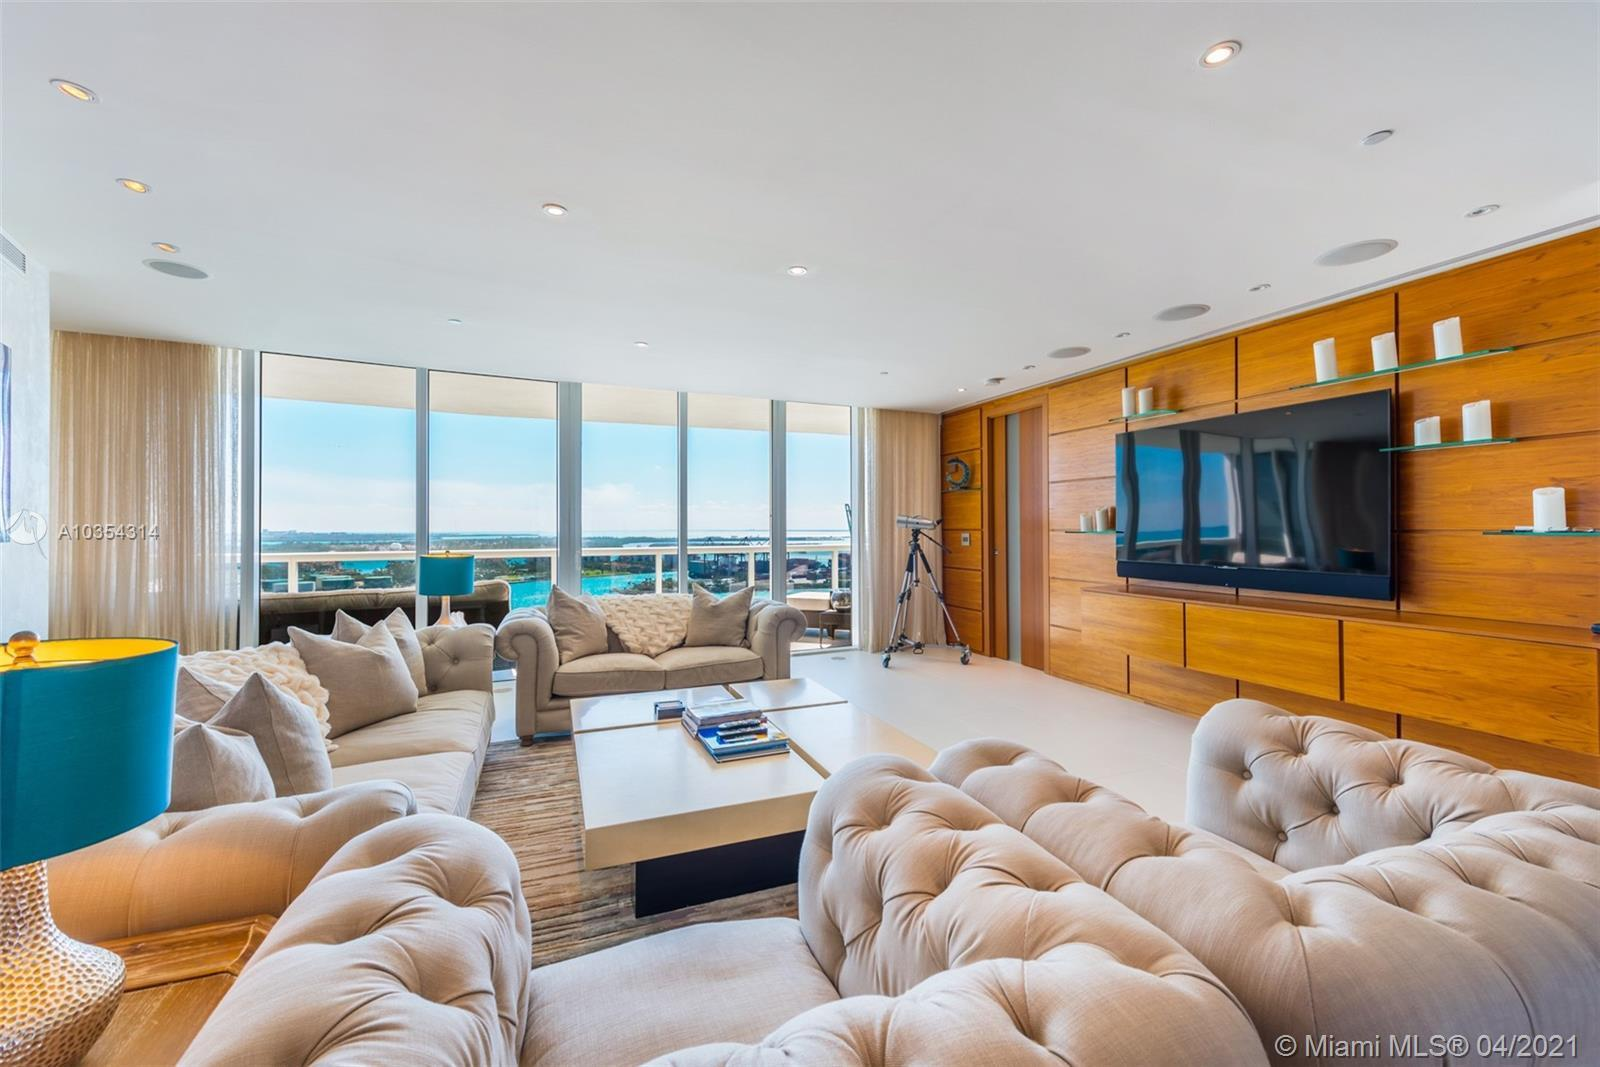 Enjoy ultimate luxury living in this stunning contemporary unit at the exclusive Murano Grande in So